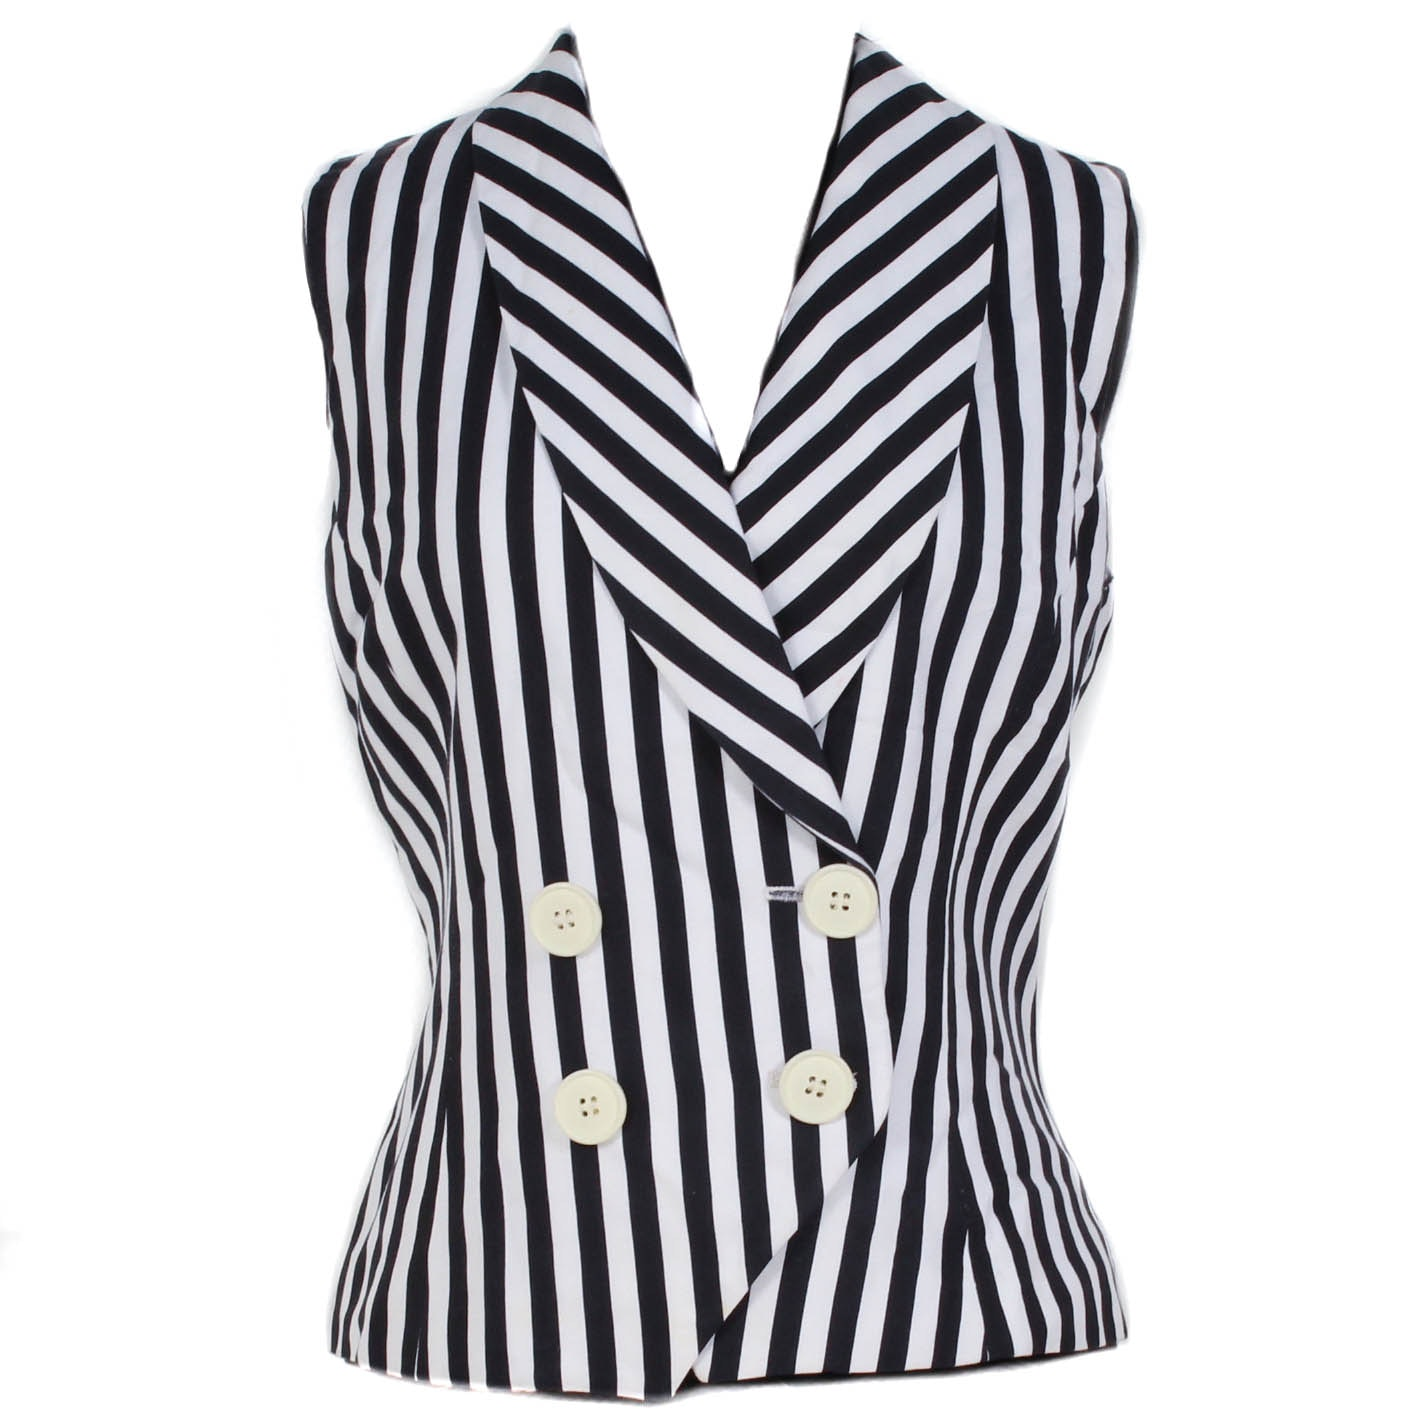 Christian Dior Black and White Striped Double-Breasted Vest